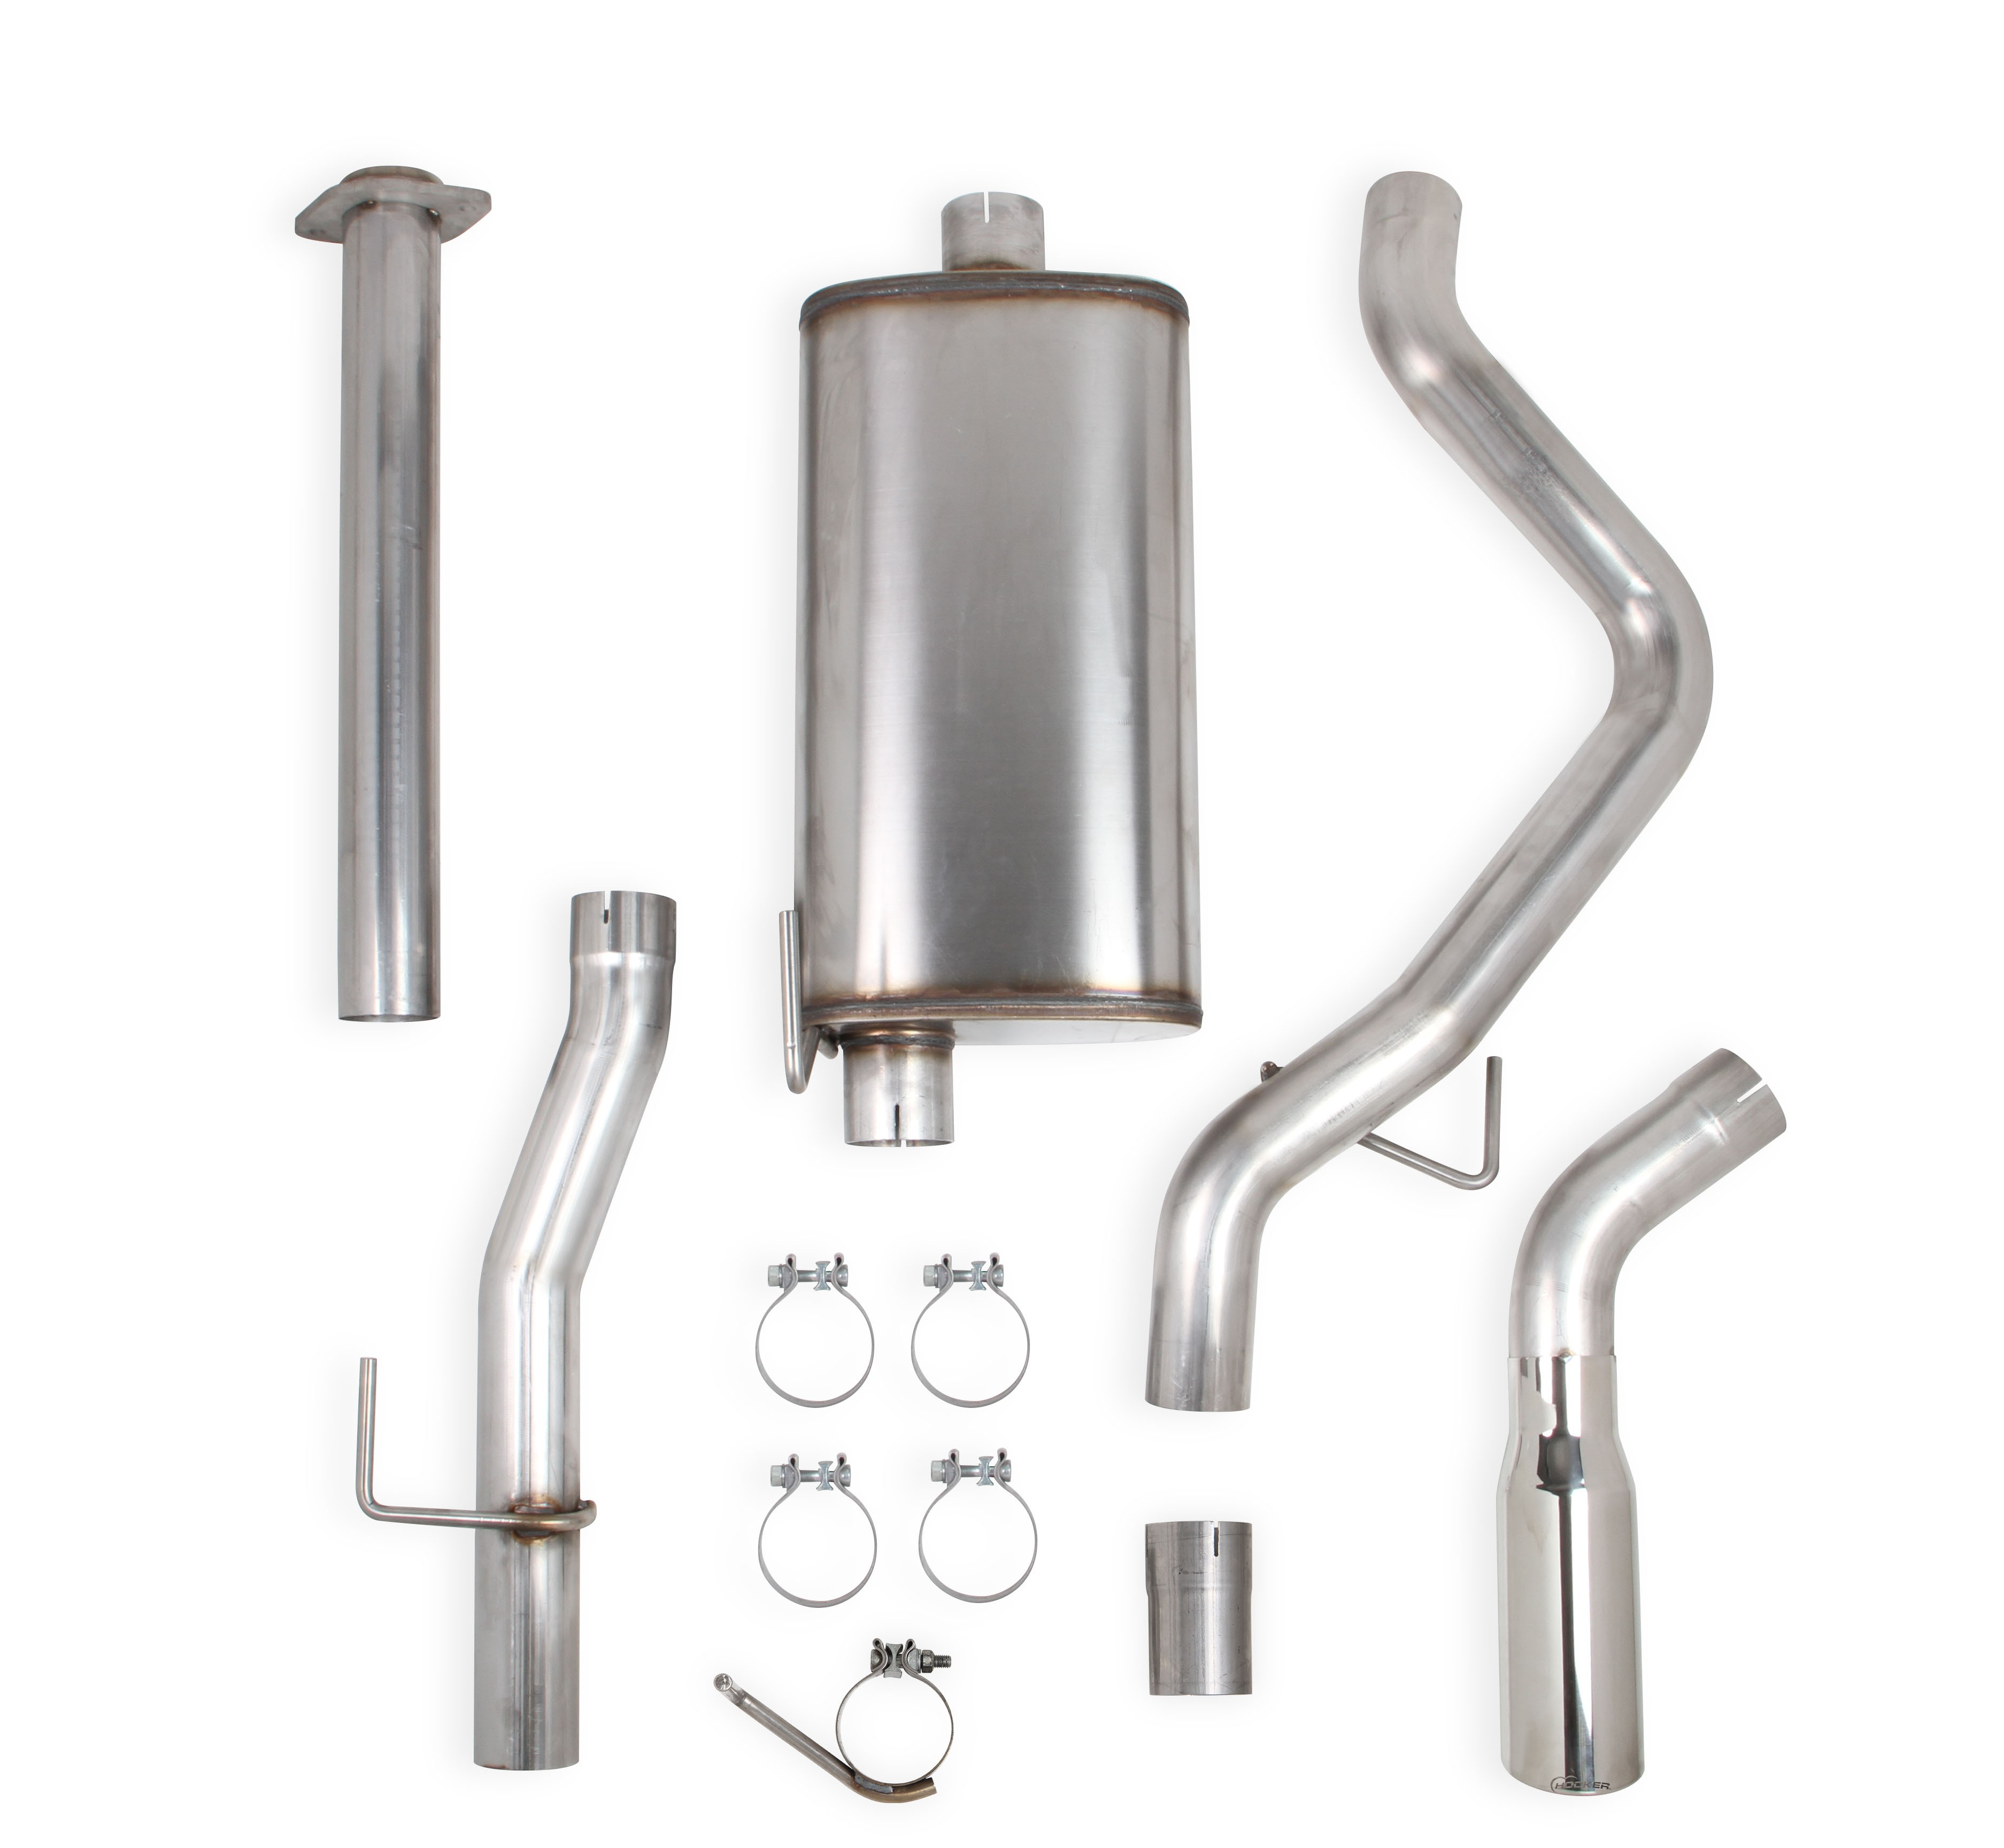 2015-2016 Ford F150 EcoBoost V6, 2.7/3.5L Stainless Steel Cat-Back- Single Exit